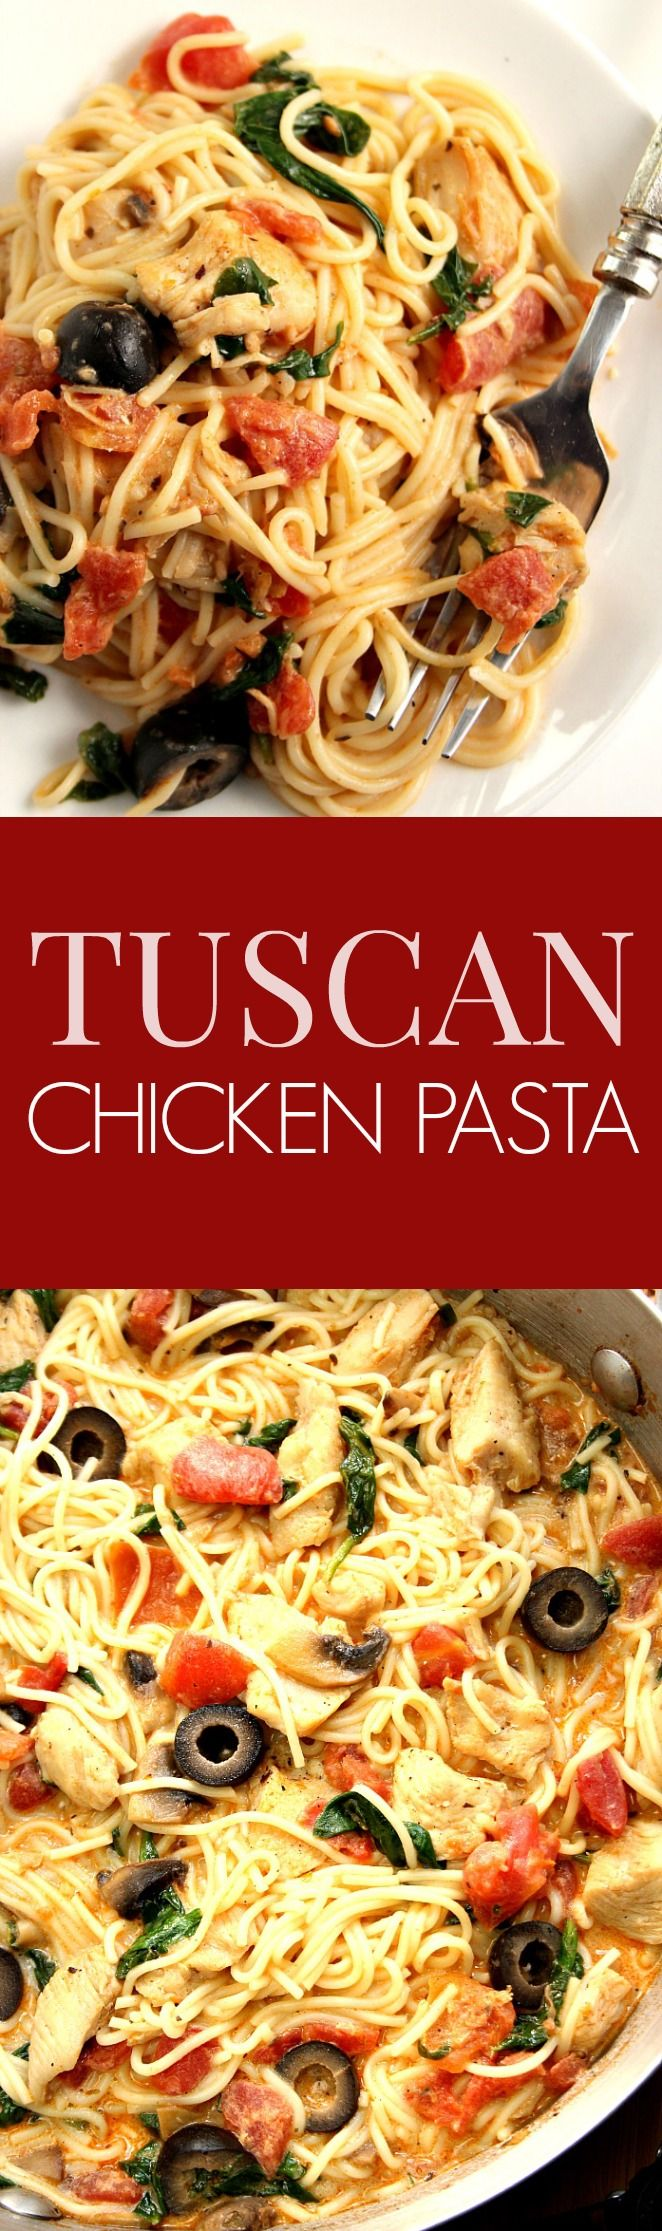 Tuscan Chicken Pasta Recipe - saucy pasta dish with chicken, spinach, tomatoes, olives, mushrooms and angel hair pasta. It cooks in 20 minutes and it's pure comfort food for the soul!